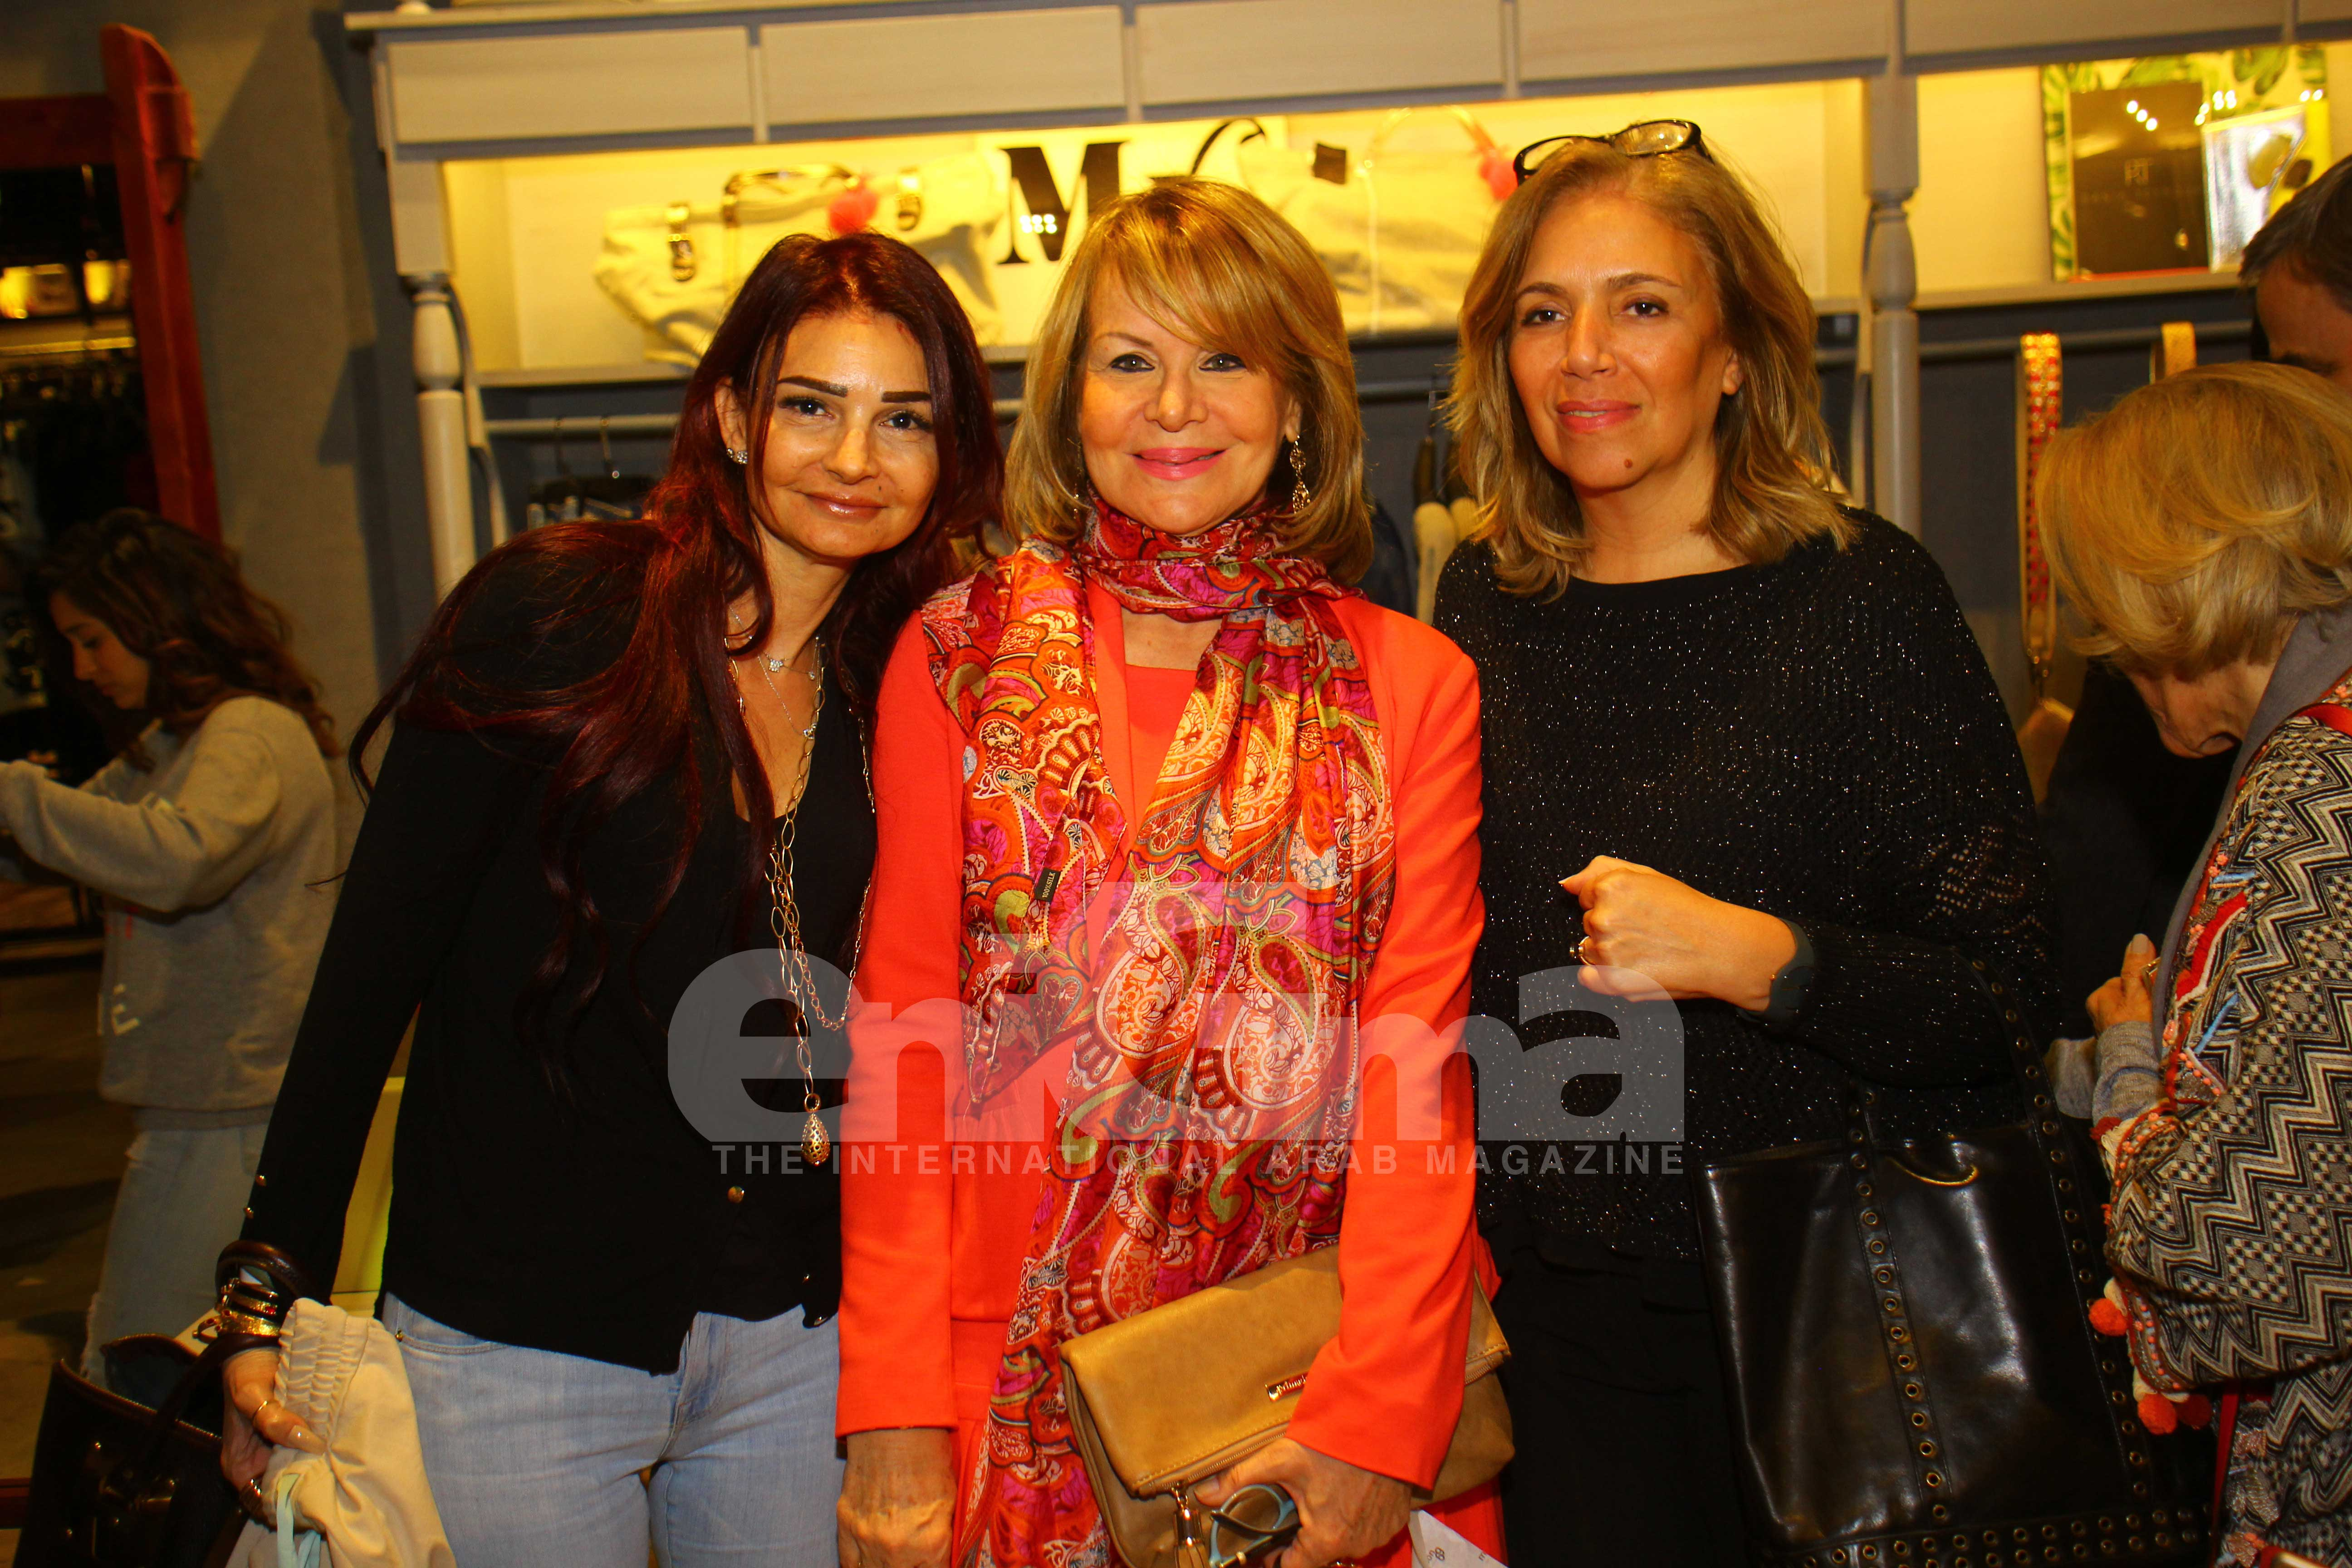 Ms. Ghada Moussa, Ms. Patty Bercovich & Ms. Sherine Rahmy